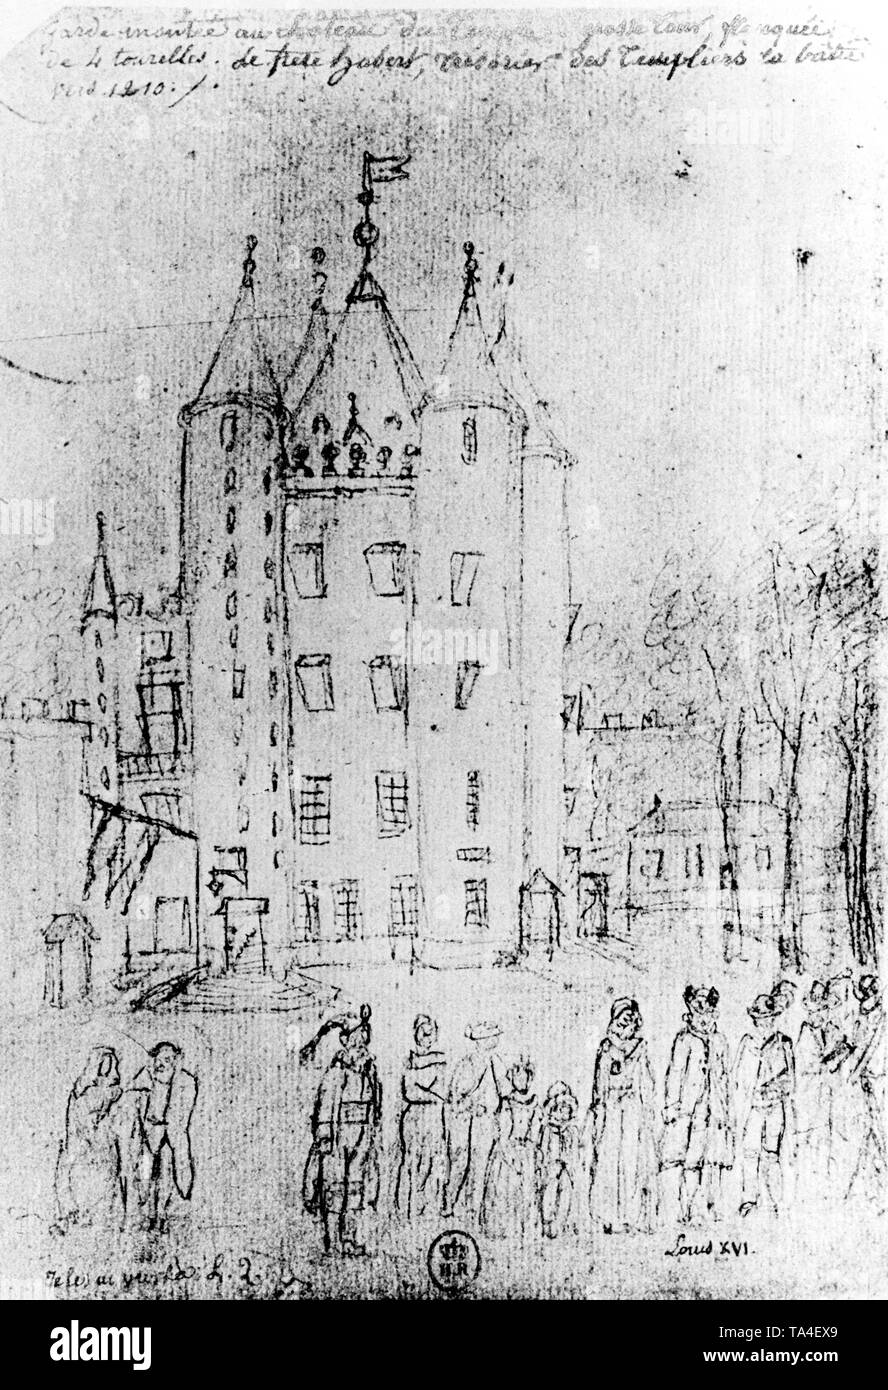 Sketch of the tower named 'Temple', part of the 12th-century Templar monastery, that becomes the prison of King Louis XVI and his family at the time of the French Revolution. - Stock Image